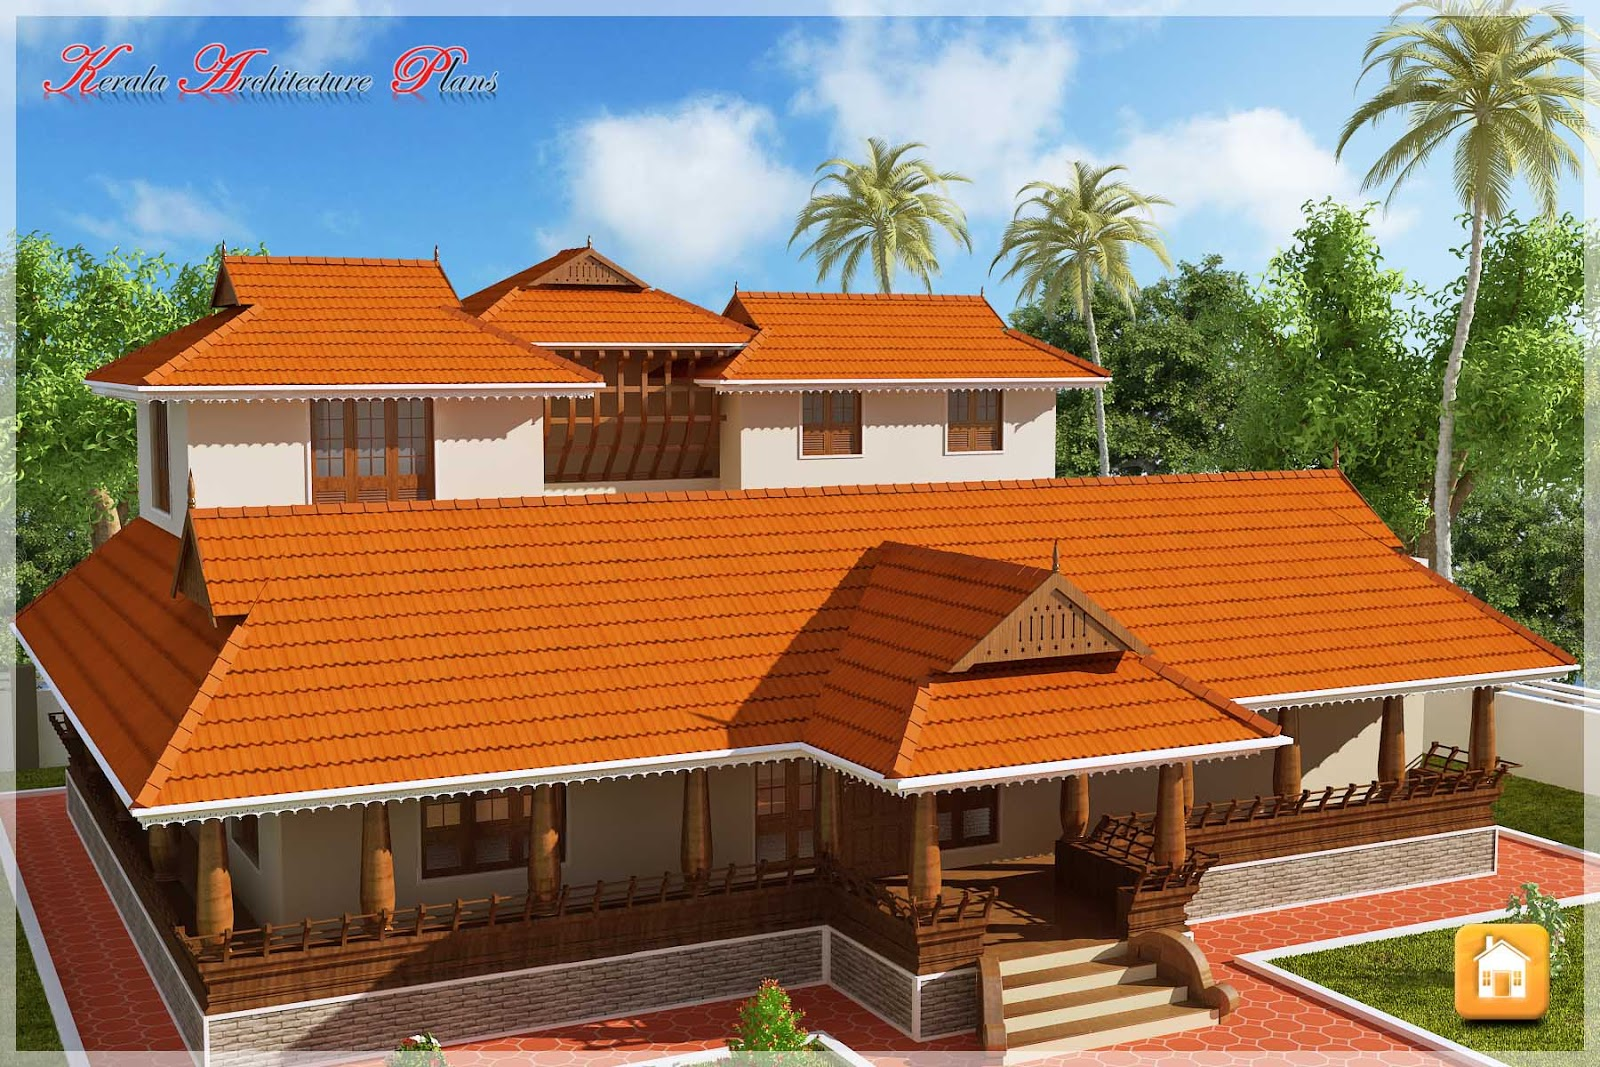 special features: Poomukam, Nadumuttam, Charupadi design on verandah